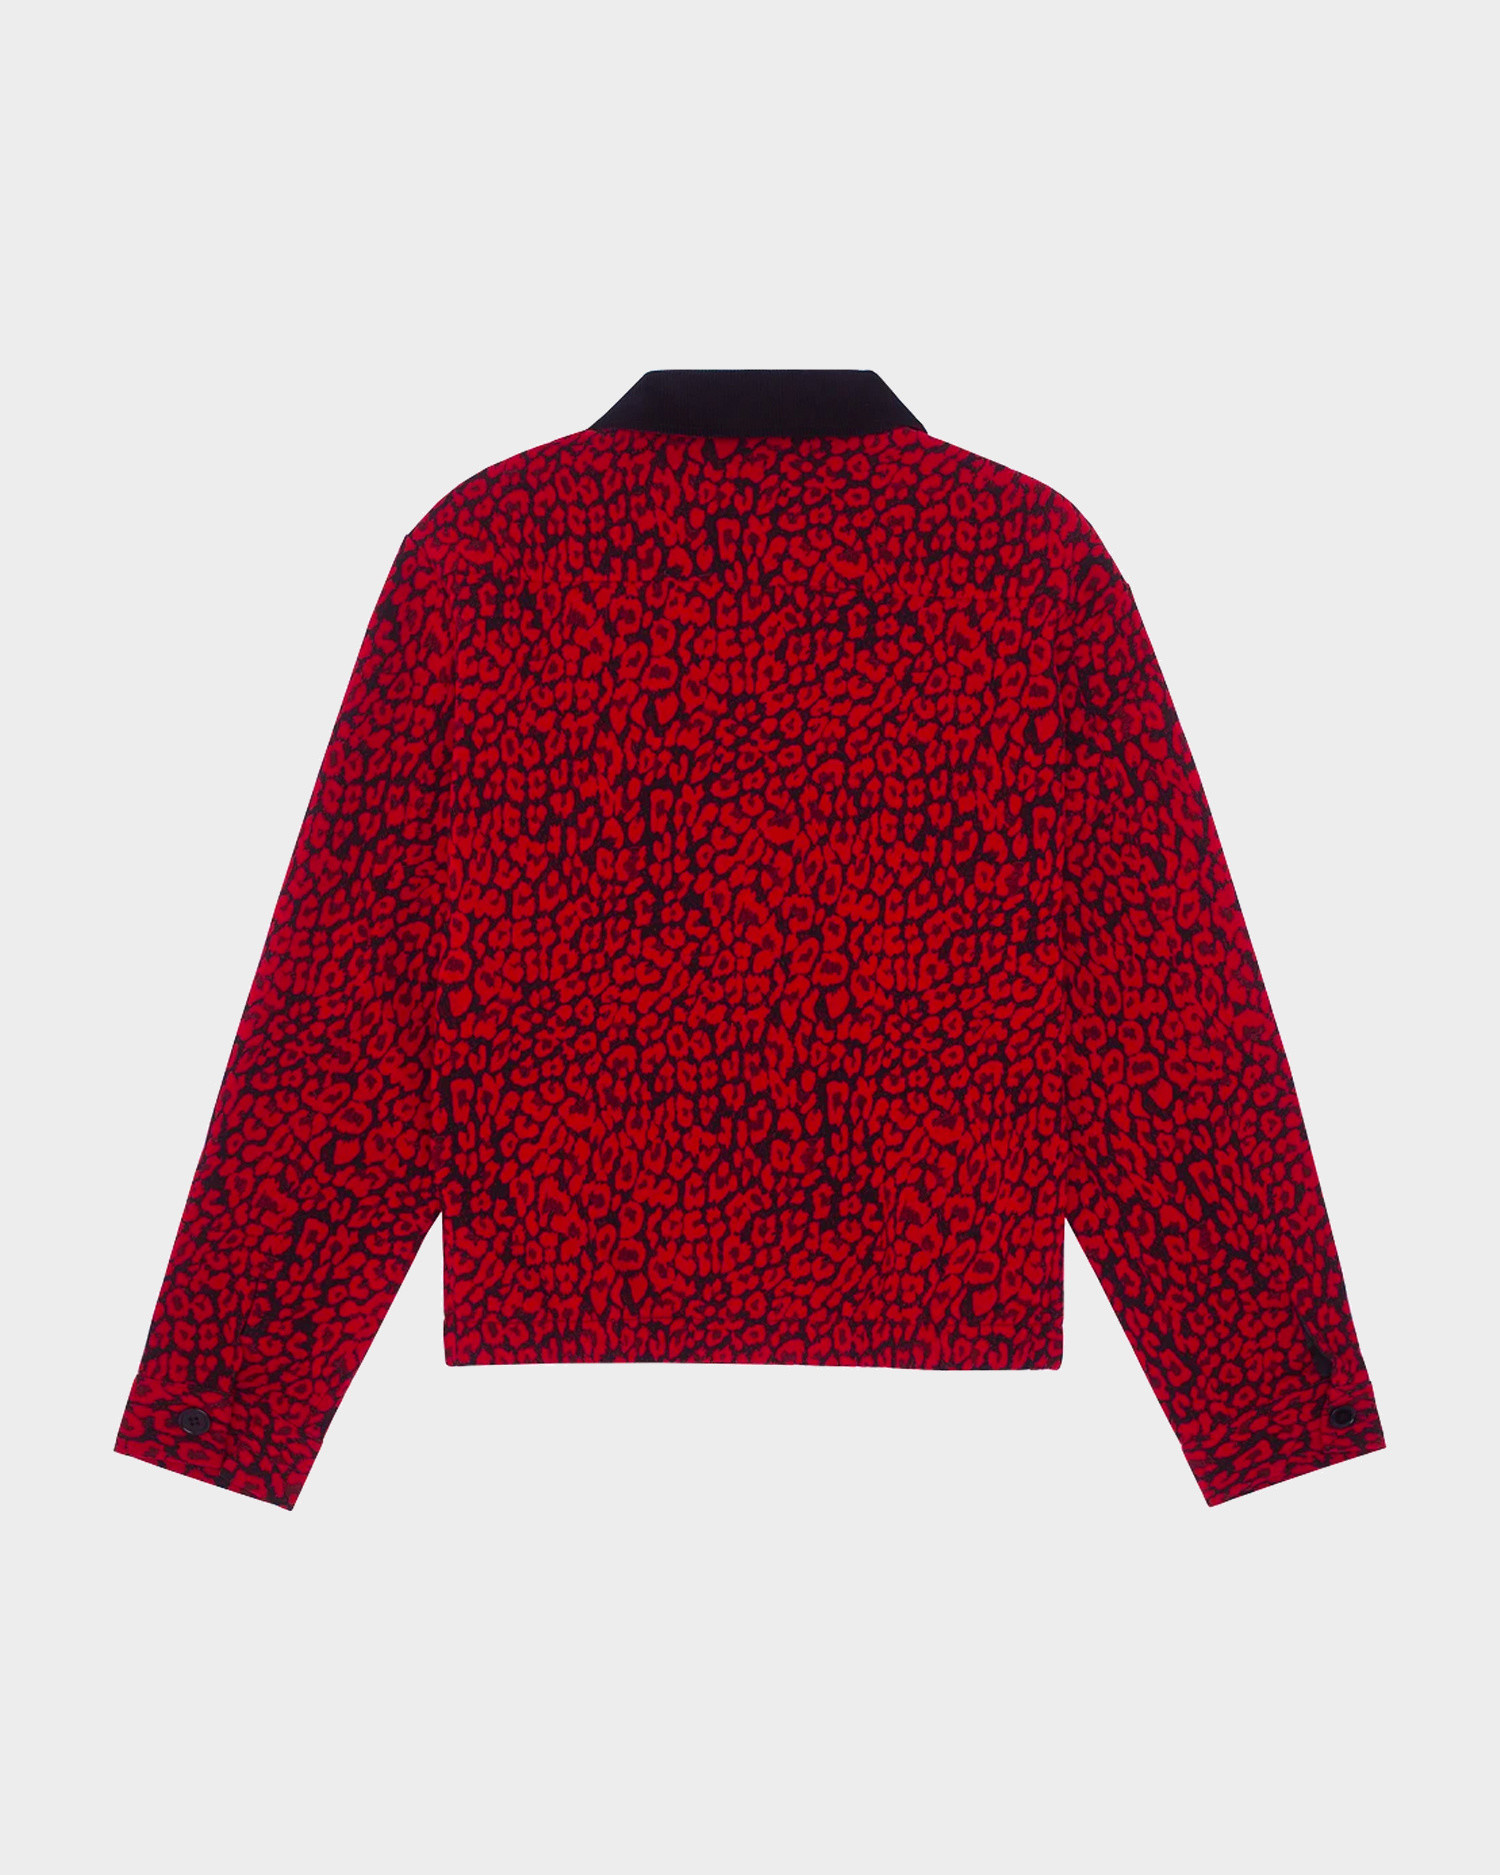 Fucking Awesome Tailored Work Jacket Red Roses / Black Cord Collar